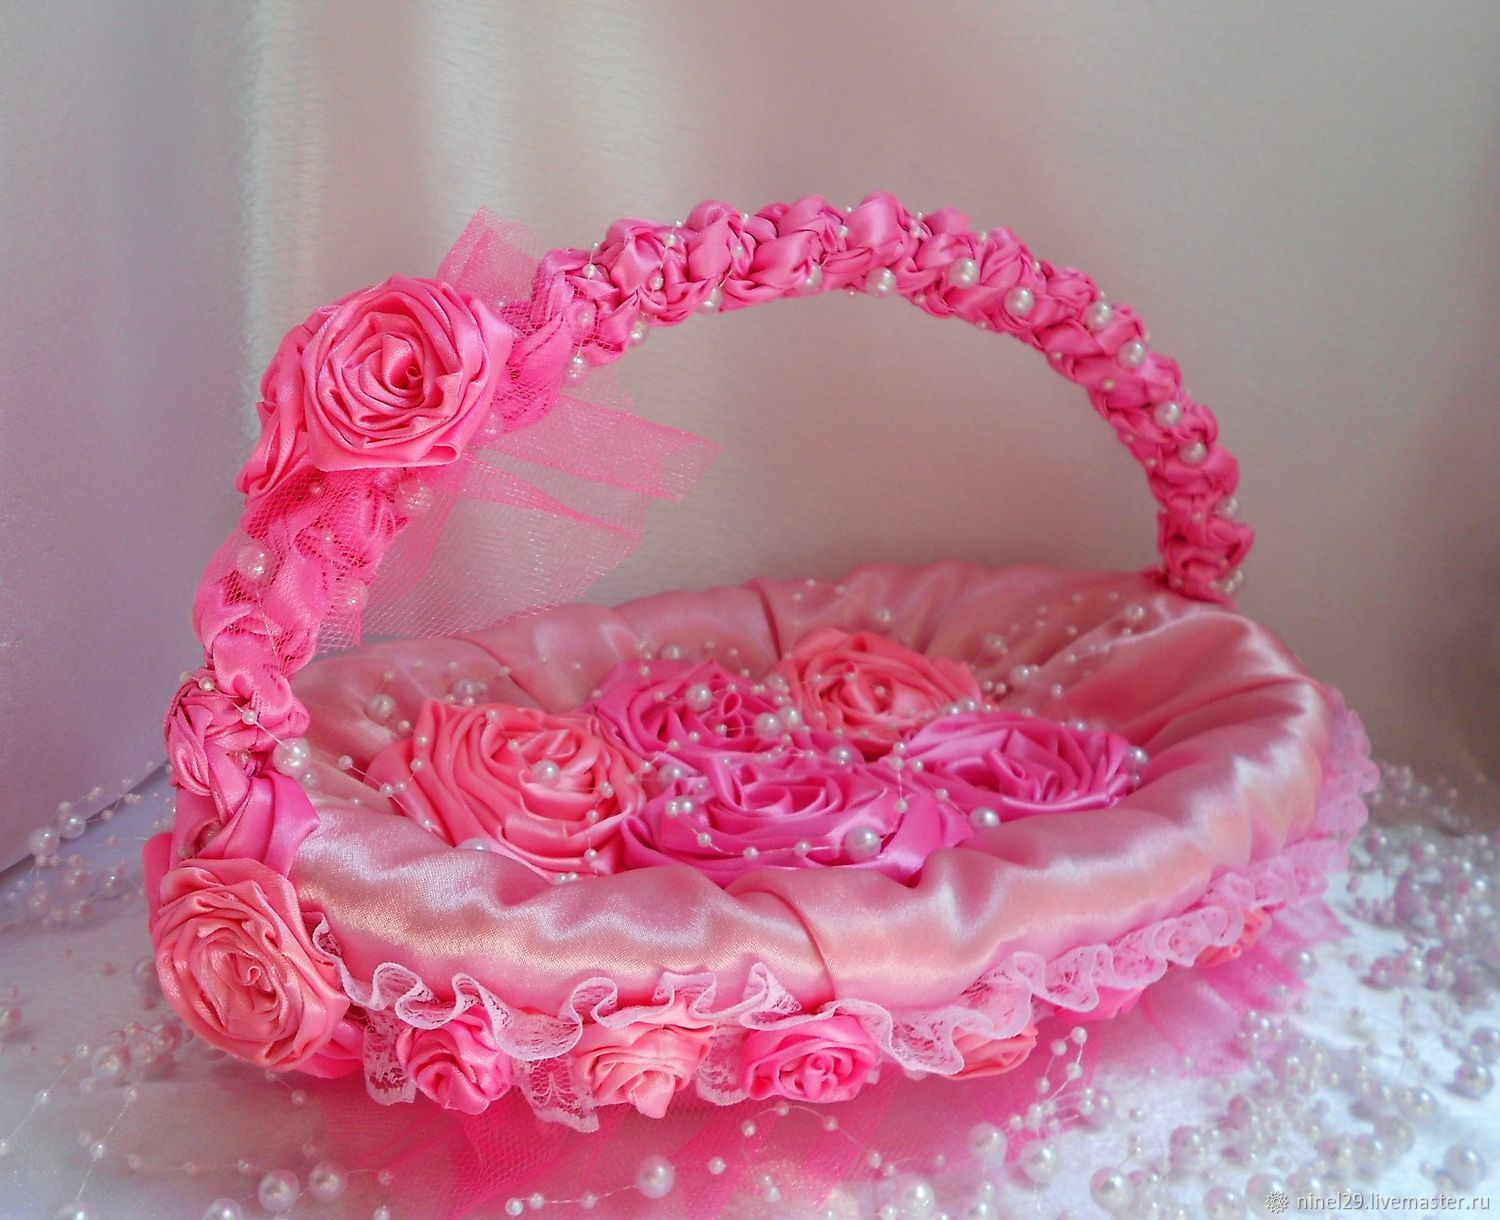 Decorative basket with roses of satin ribbons \